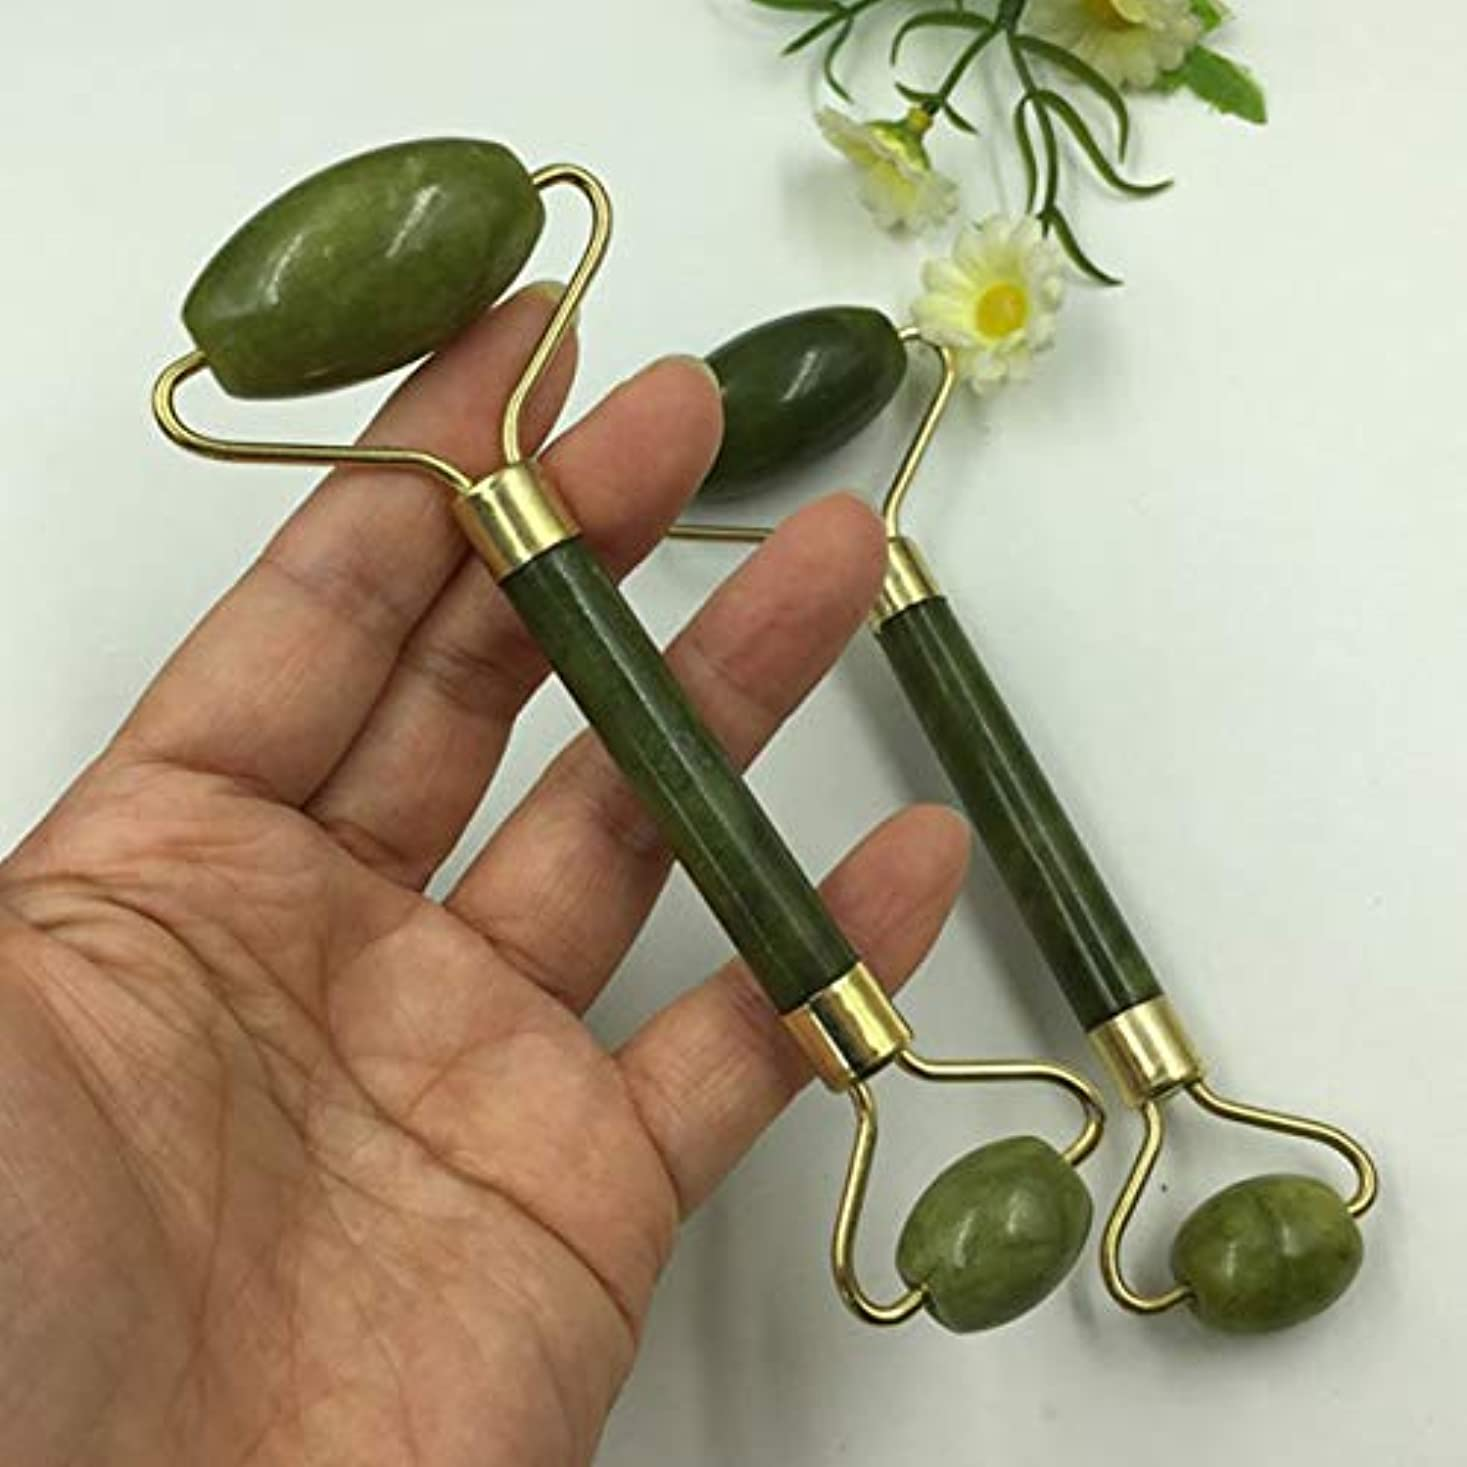 差別する差別するかなりのJade Roller Massager Natural Serpentine Jade Massage Wand Face Massager Roller Beauty Bar Healing Stone